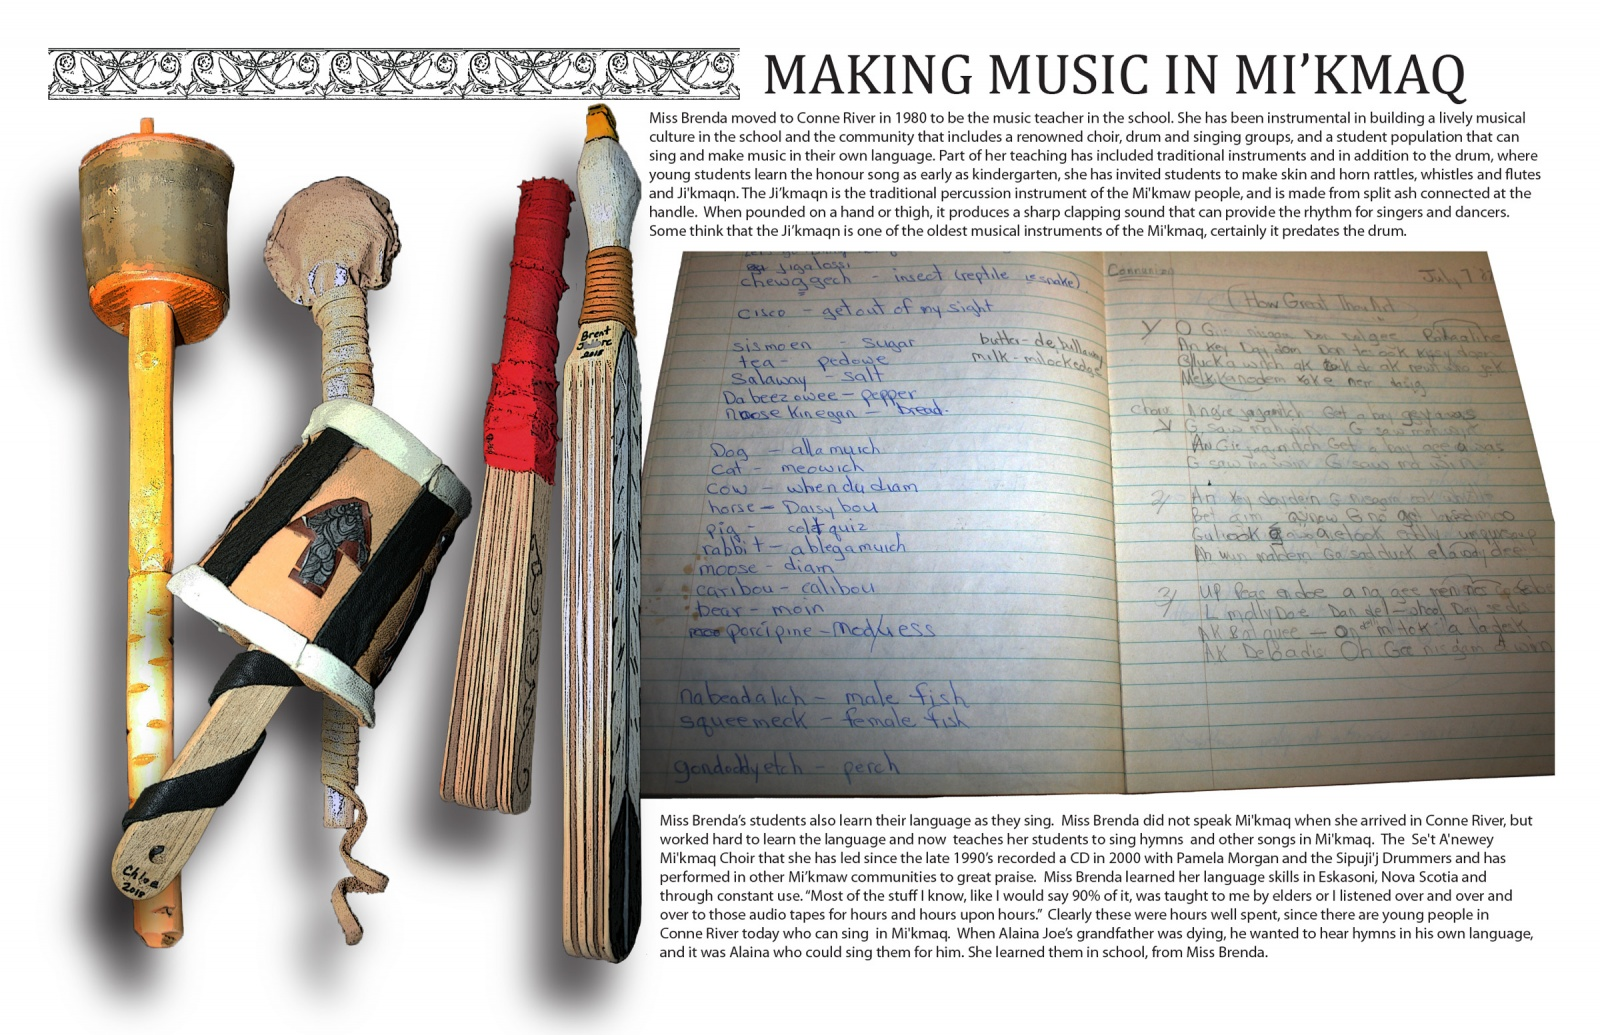 Making Music in Mi'kmaq